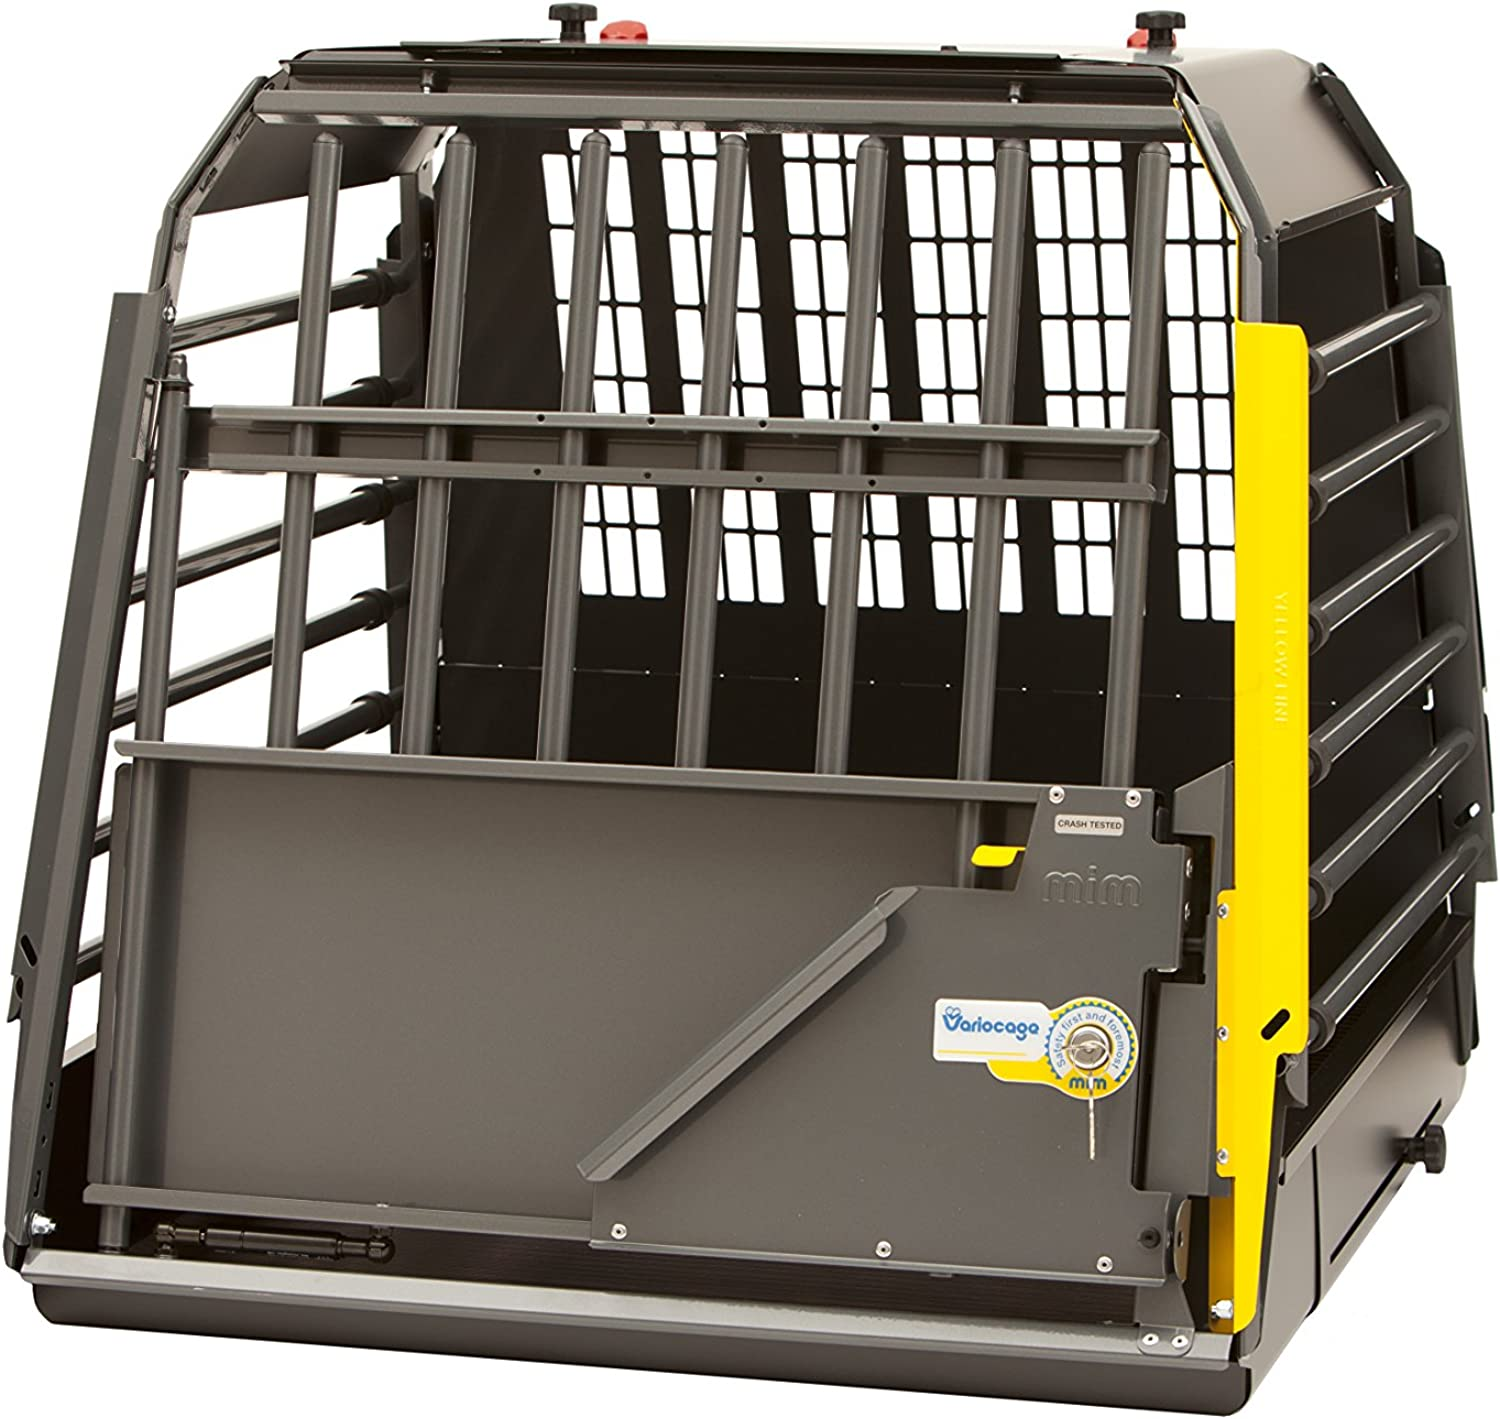 4x4 North America 00379 Crash Tested Dog Cage, 31.8940.55 x 27.55 x 27.16